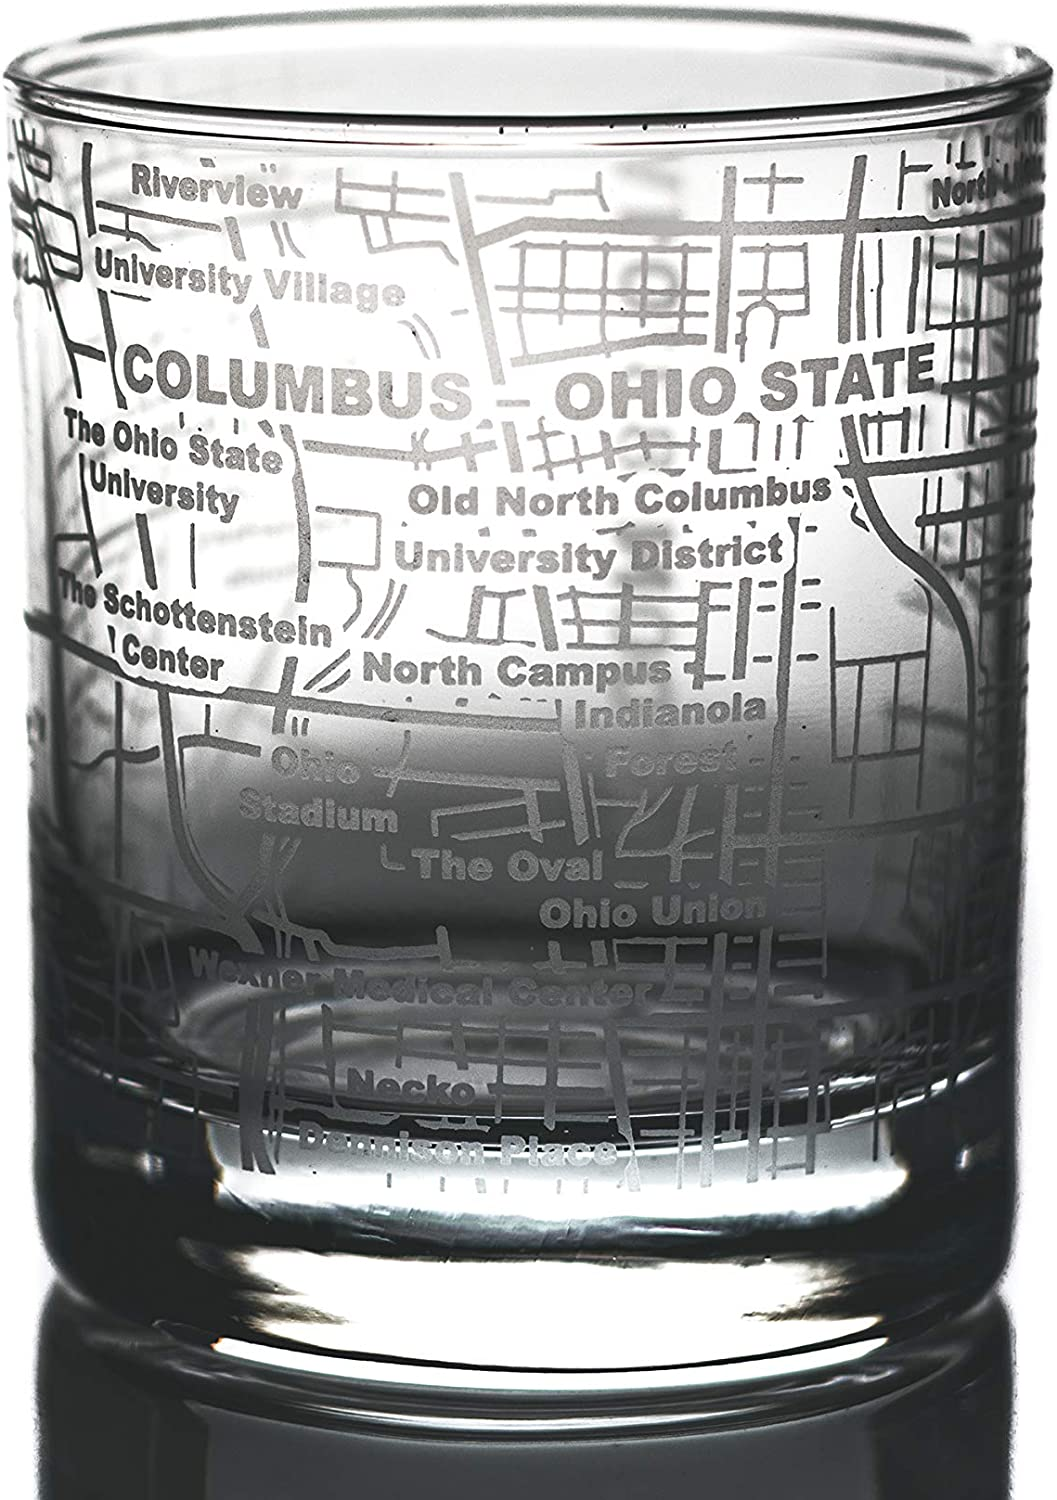 Greenline Goods Whiskey Glasses – Etched Ohio State Campus Map (Single Glass)| 10 Oz Tumbler Gift |Game Day Old Fashioned Rocks Glasses